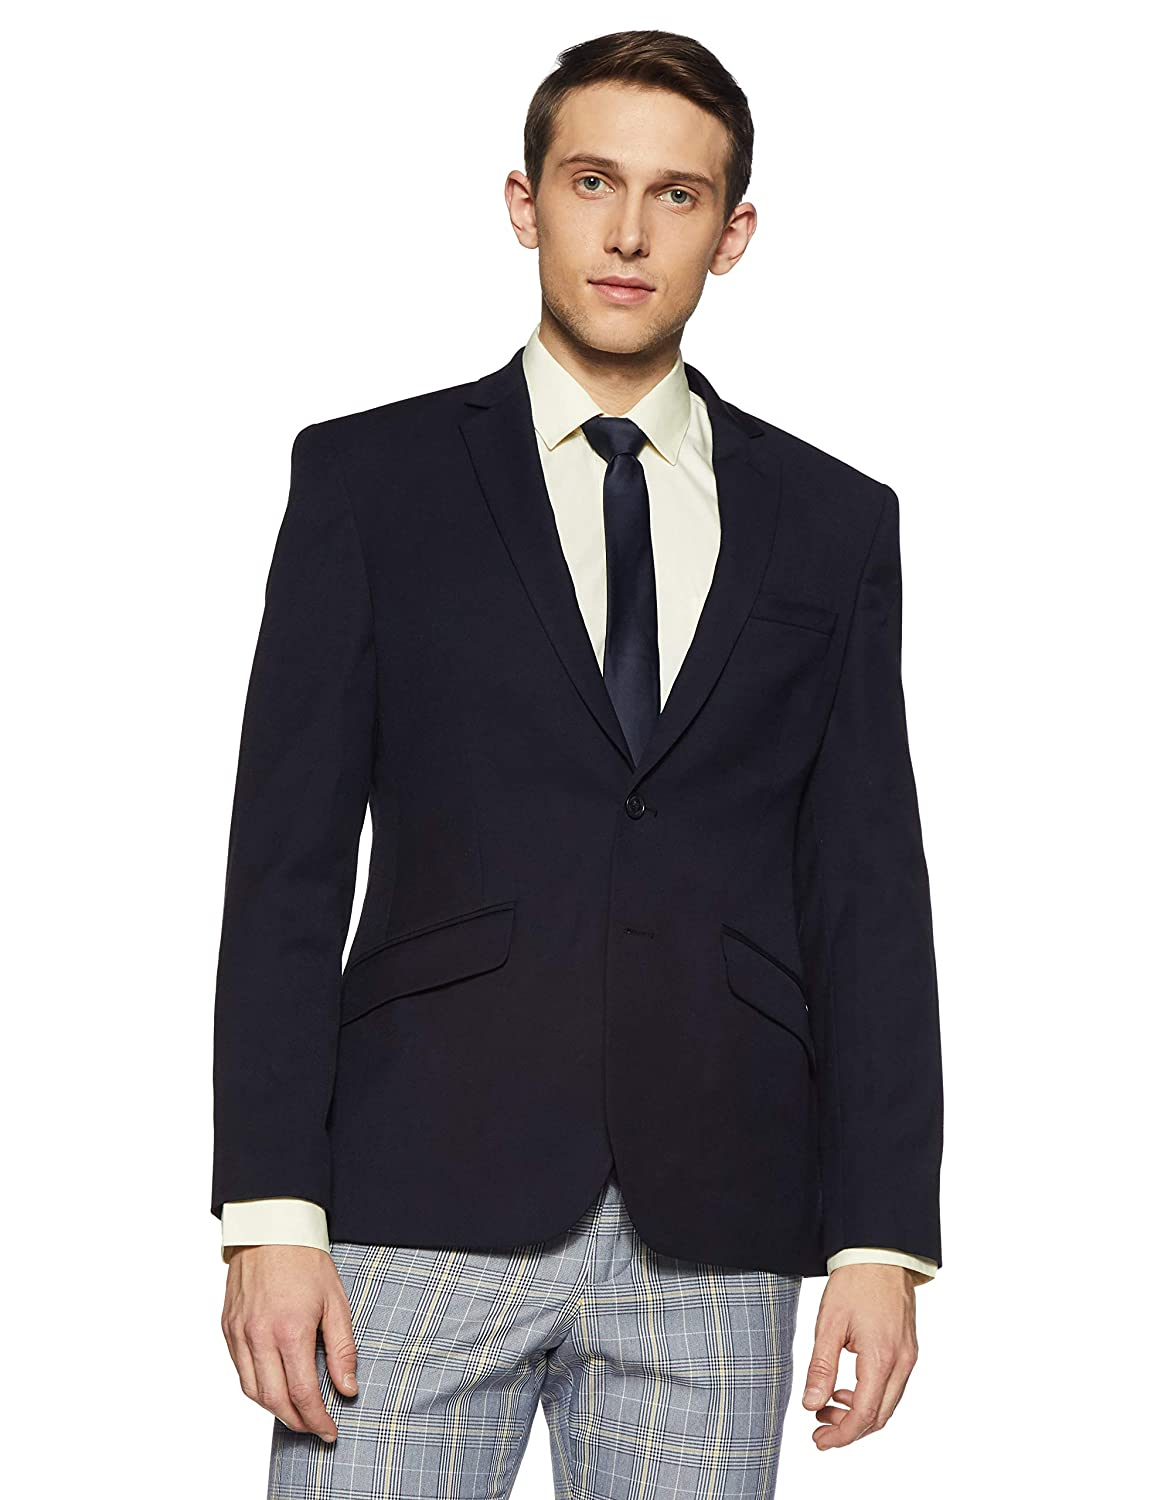 For 2153/-(61% Off) Park Avenue, Raymond Men's Blazer At Min 50% Off At Rs.2135 at Amazon India